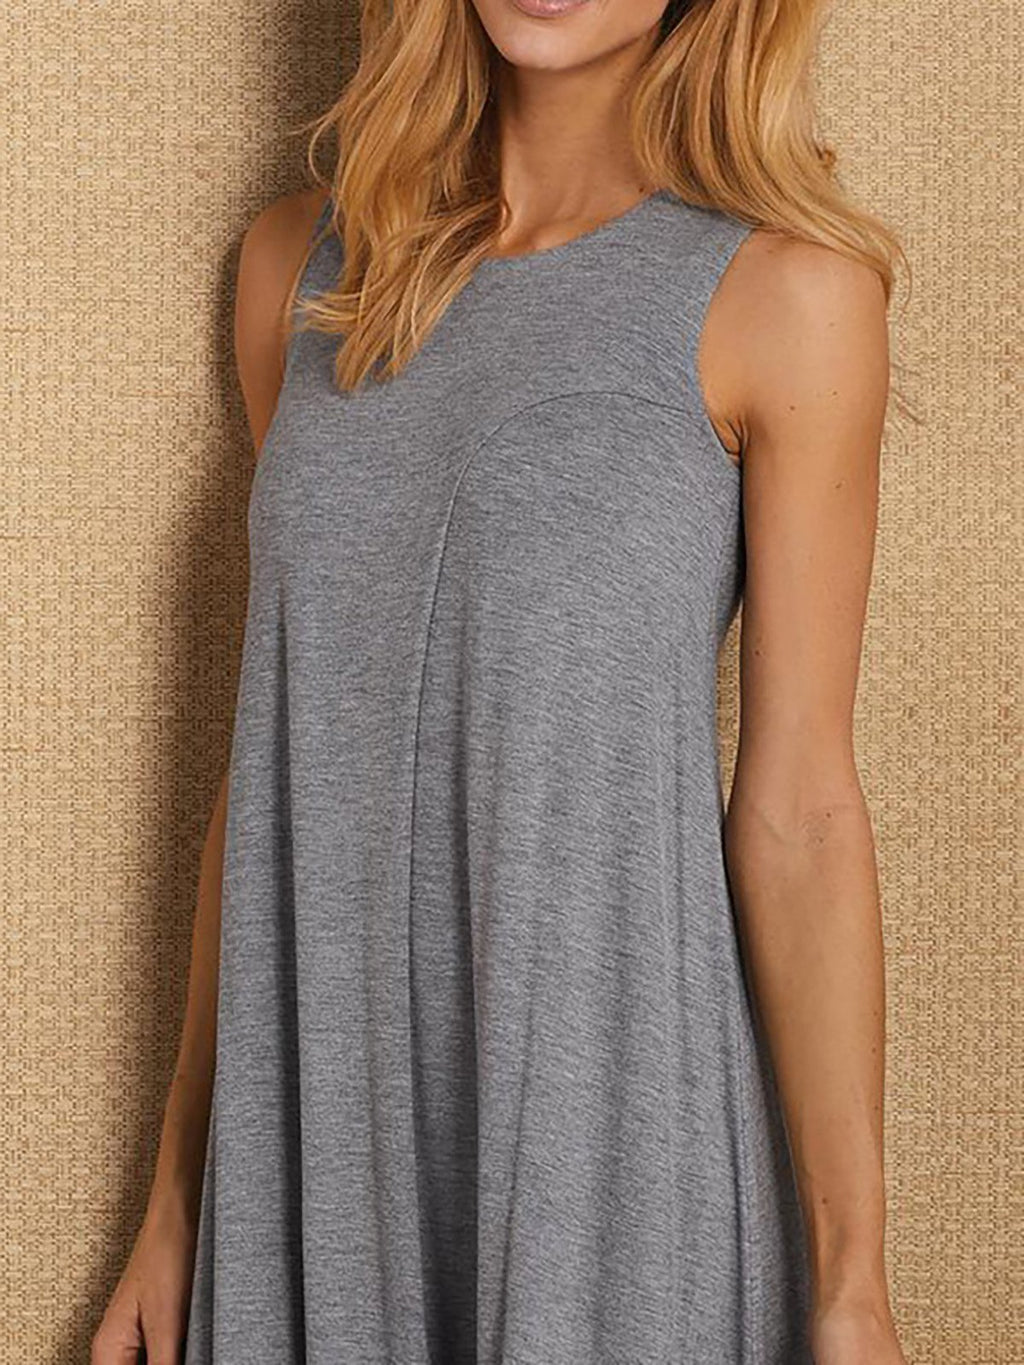 Daily Solid Crew Neck Casual Sleeveless Asymmetrical Dress